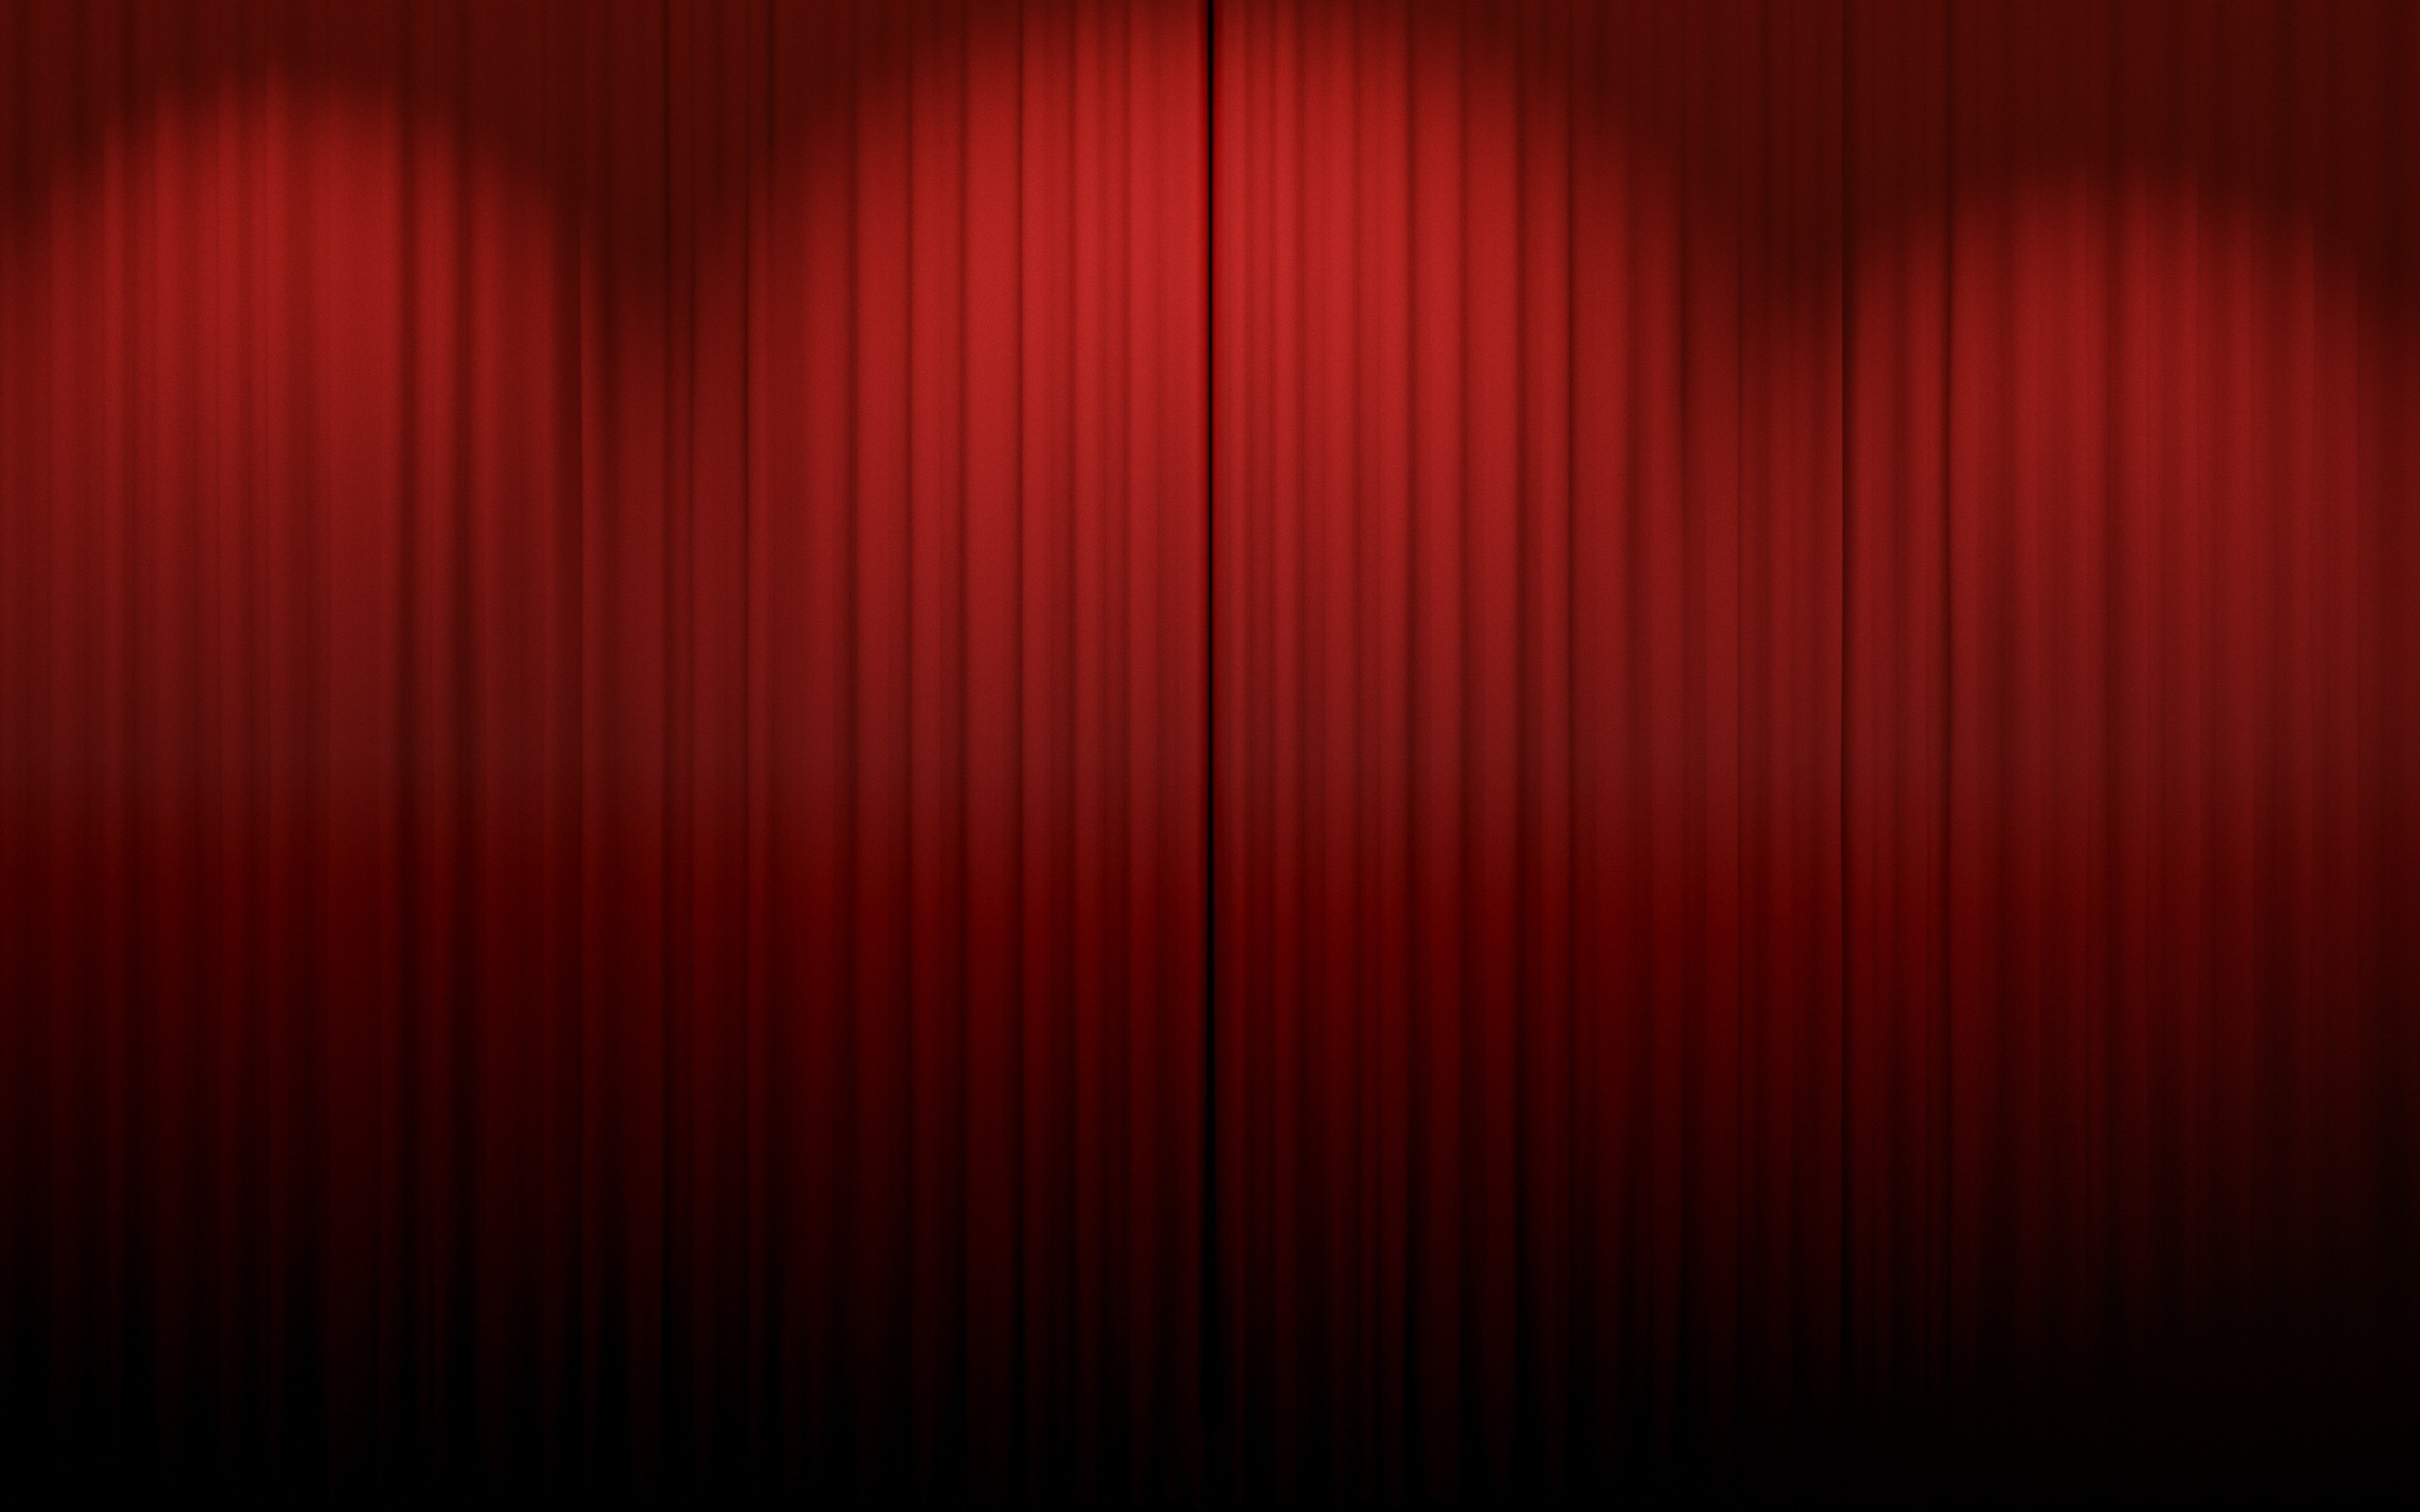 Bl blue stage curtains background - Red Curtains Wallpaper 2560x1600 Red Curtains Theatre Scenario